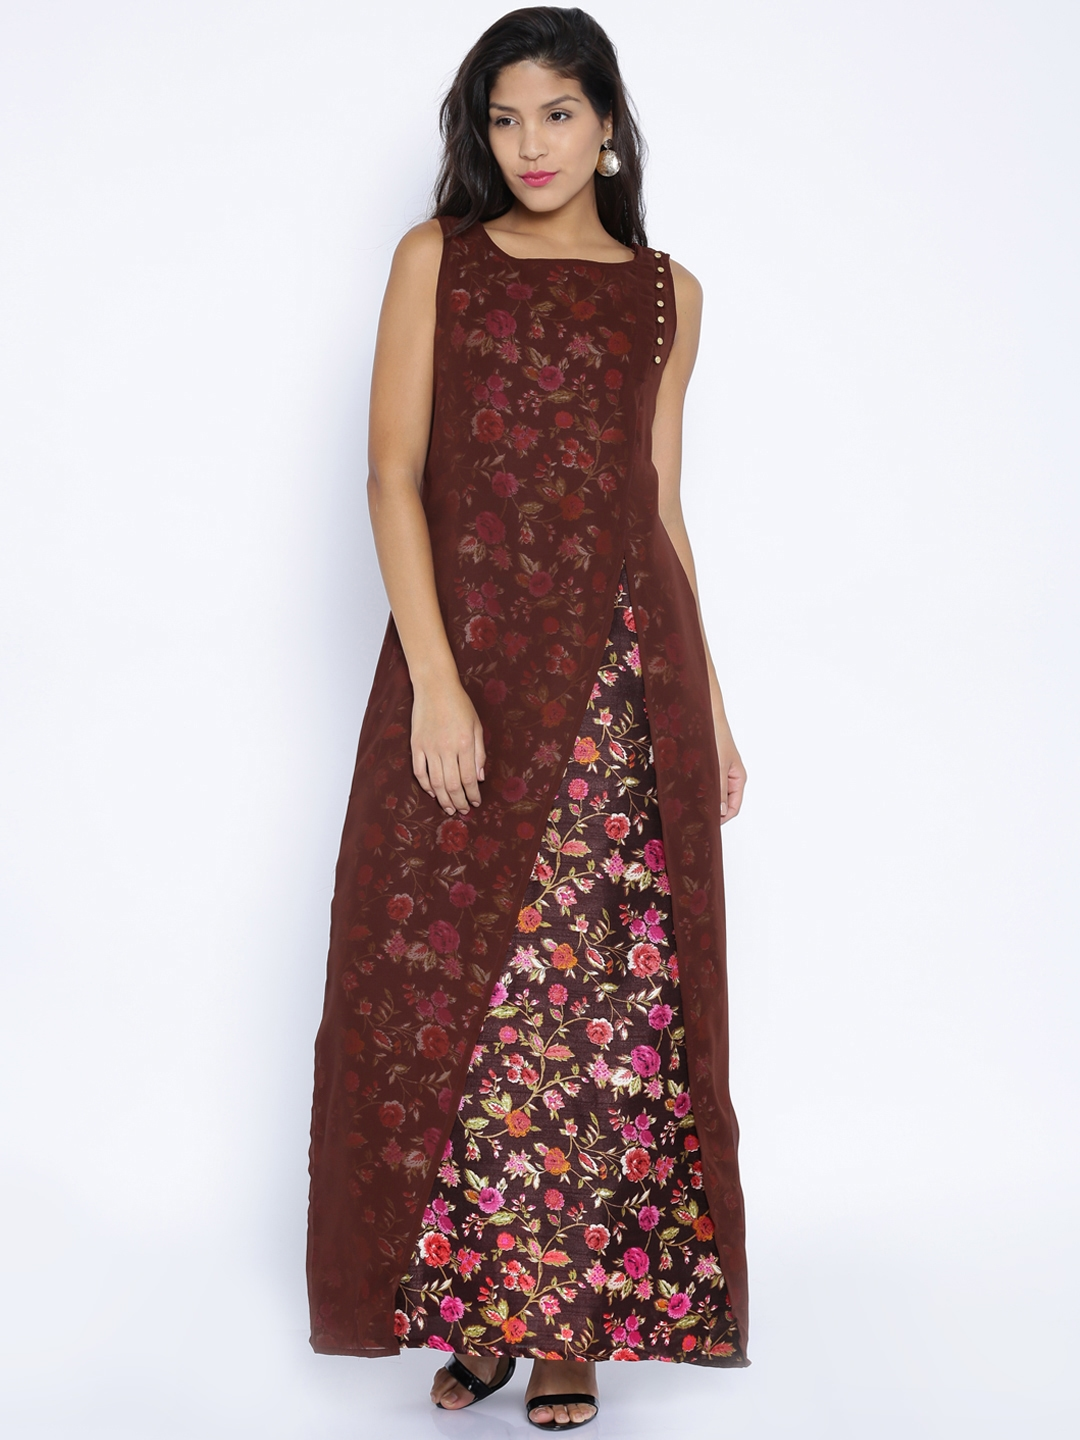 8611809fb6f8 Buy Folklore Coffee Brown Floral Print Layered Maxi Dress - Dresses ...